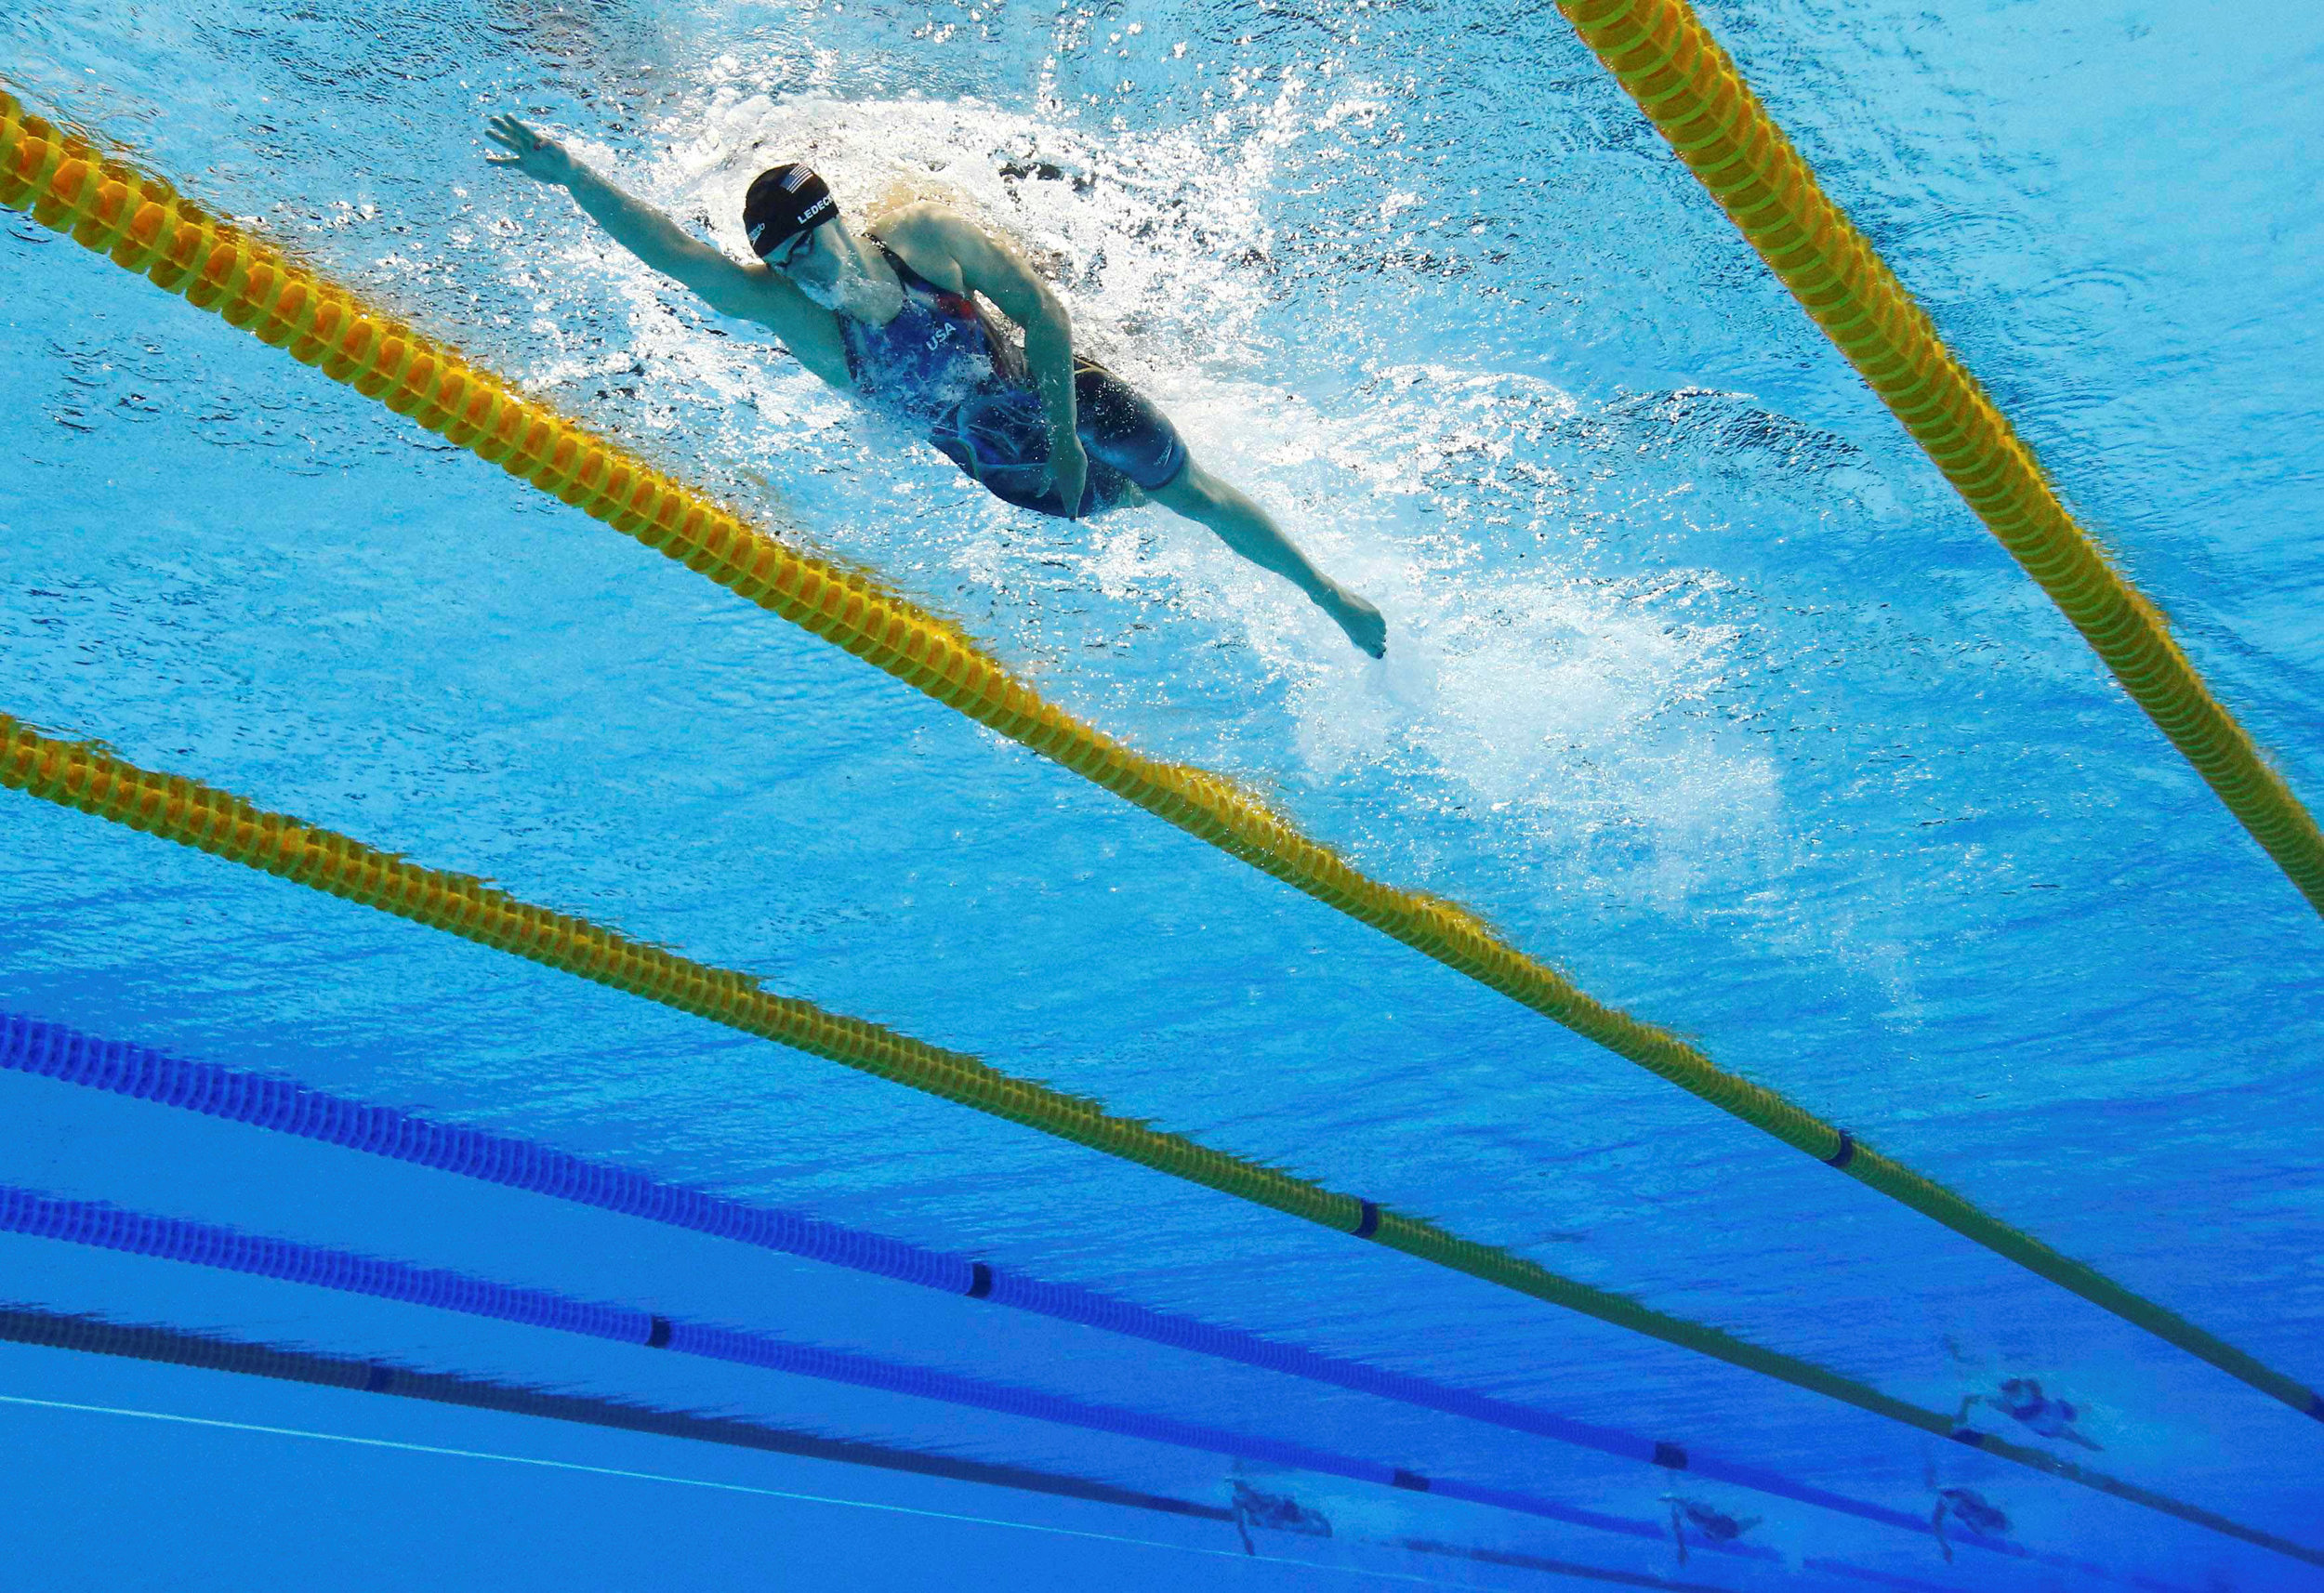 Katie Ledecky of USA Swimming steams ahead of the competition in the women's 800m freestyle final at the Olympic Aquatics Stadium in Rio de Janeiro. As this photo demonstrates, the gulf between the USA and the rest of the competition is vast. Image supplied by Action Images / Stefan Wermuth.